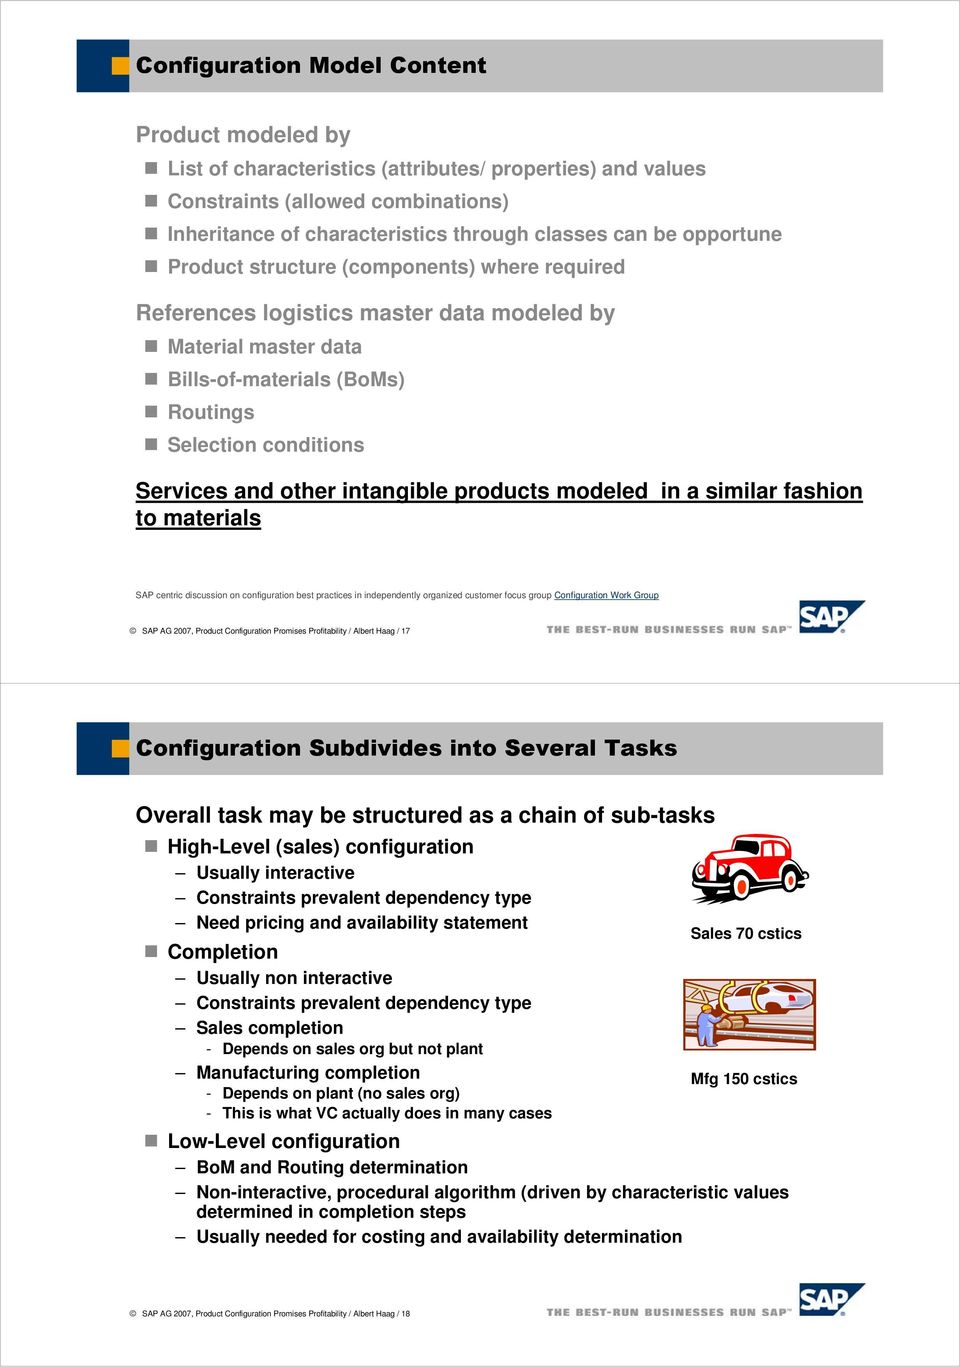 intangible products modeled in a similar fashion to materials SAP centric discussion on configuration best practices in independently organized customer focus group Configuration Work Group SAP AG